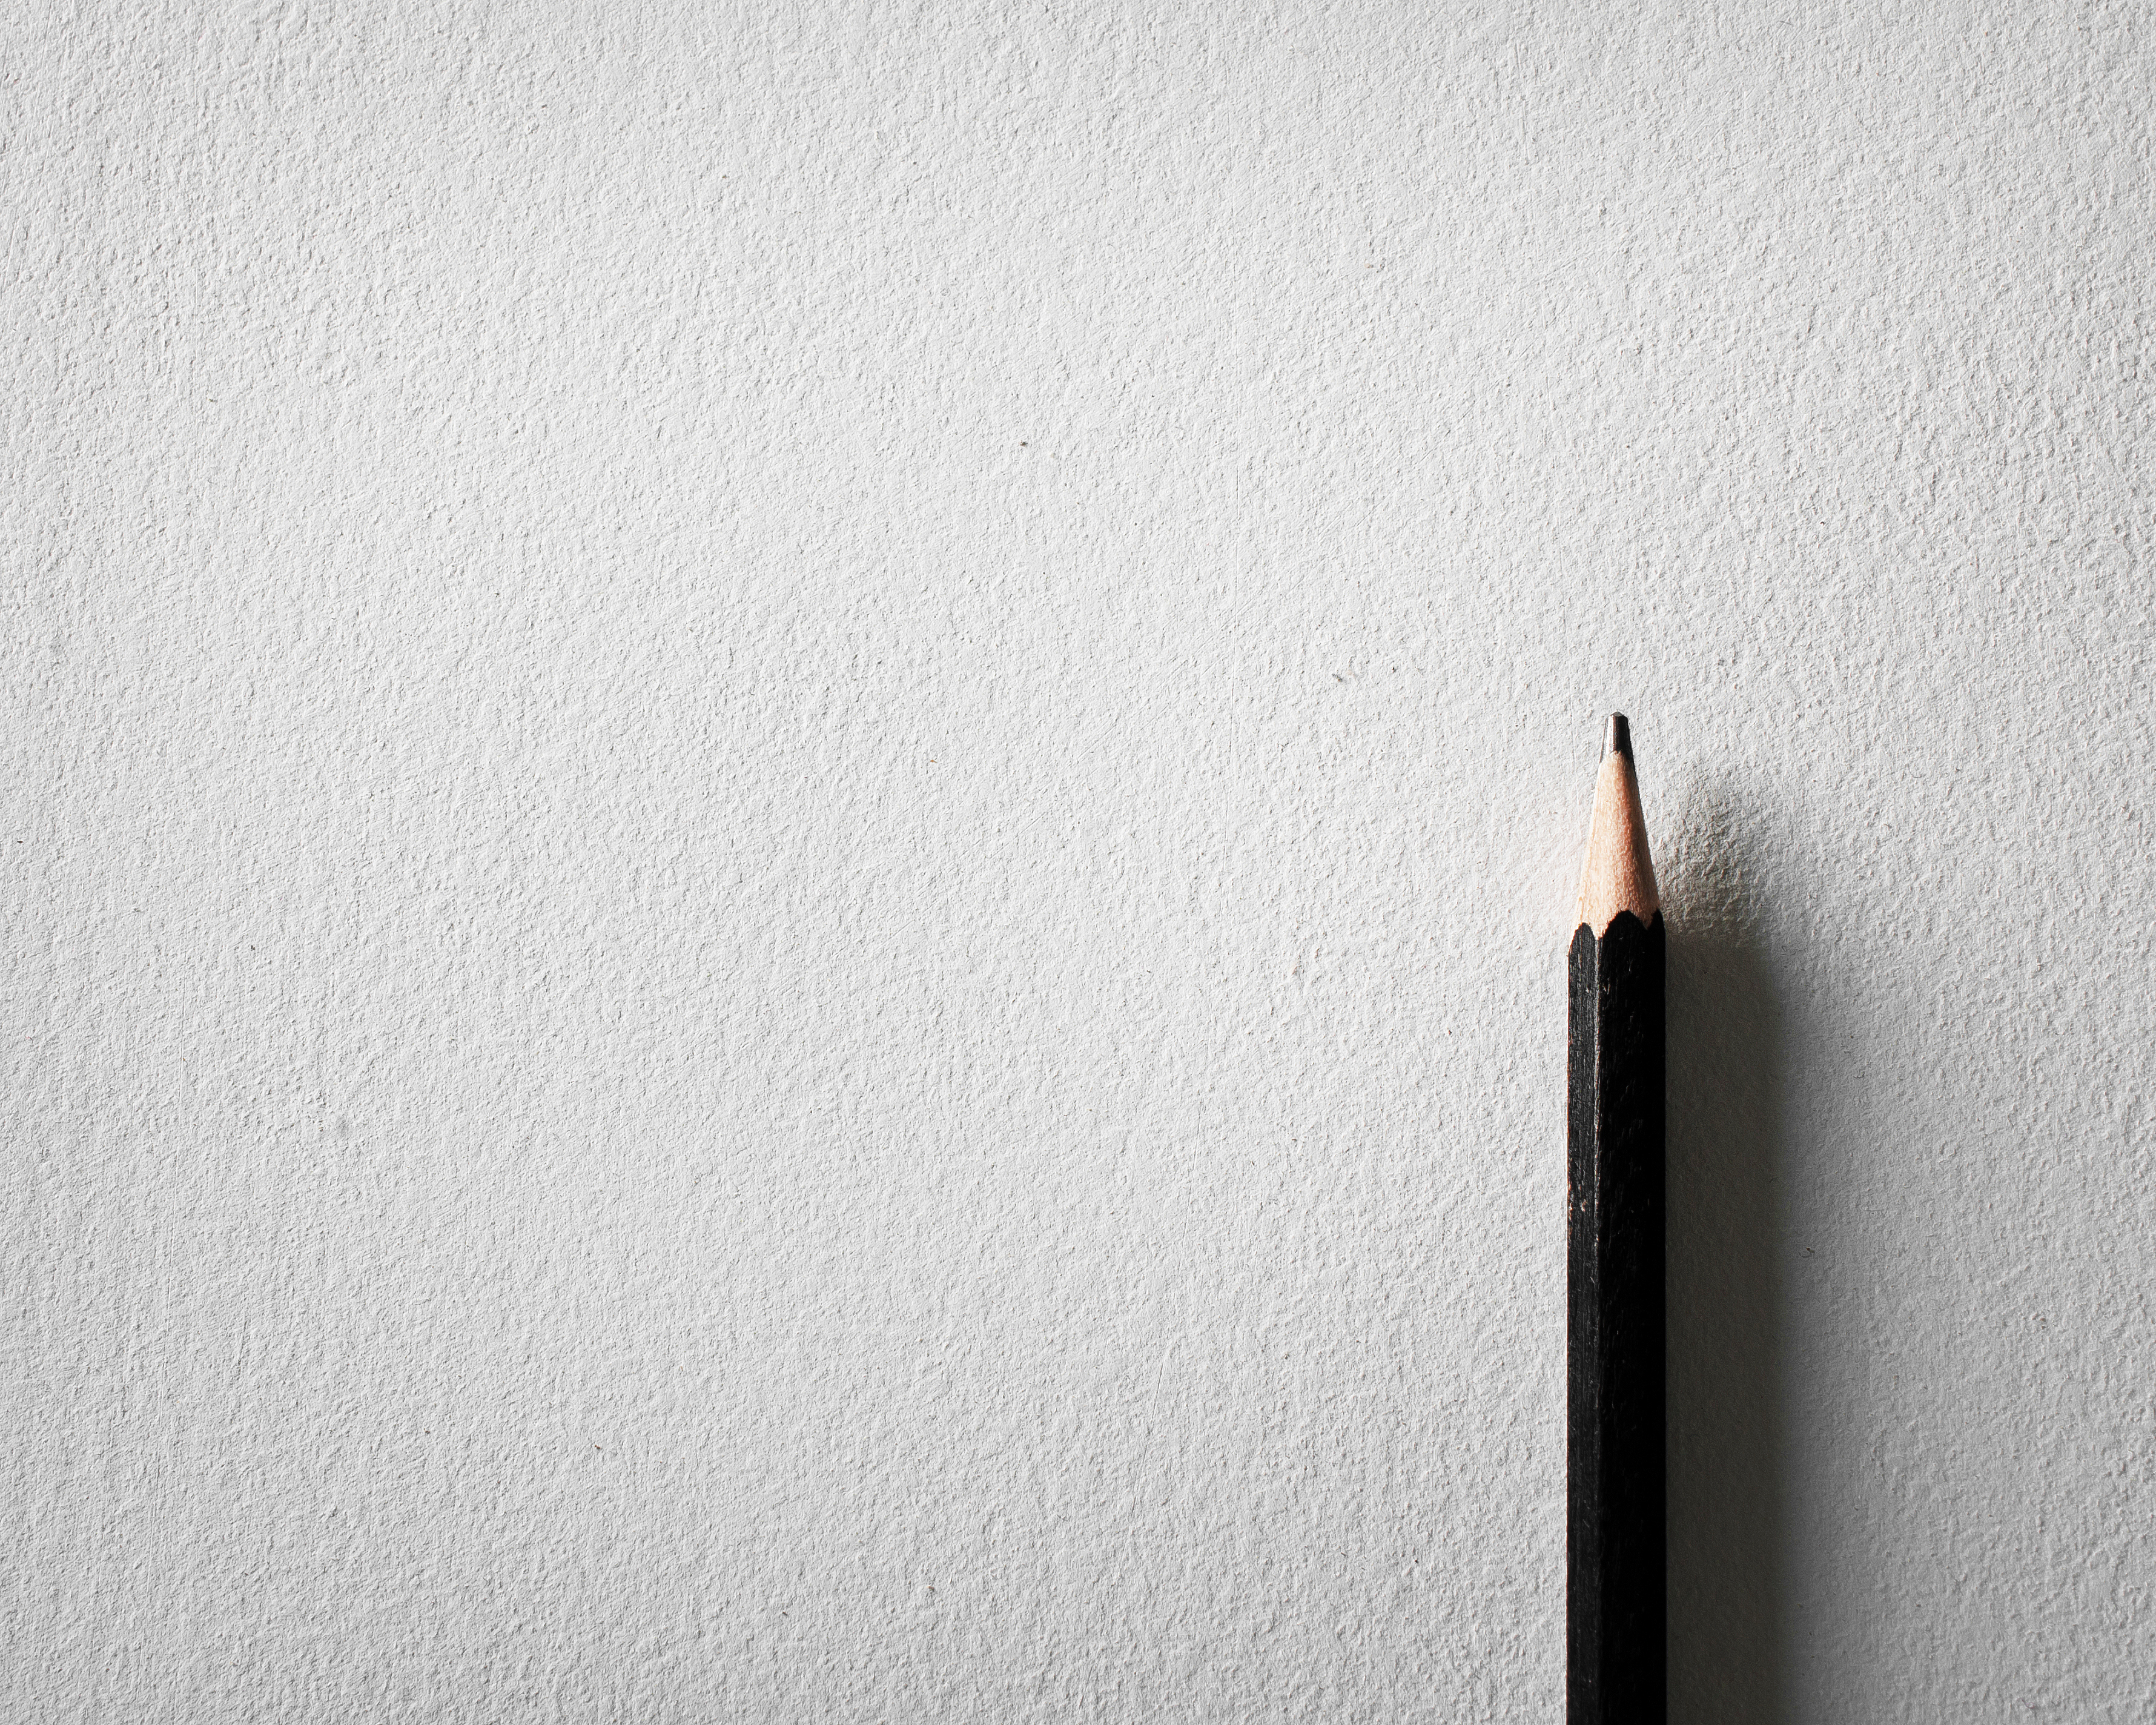 Close-Up Of Pencils On Paper